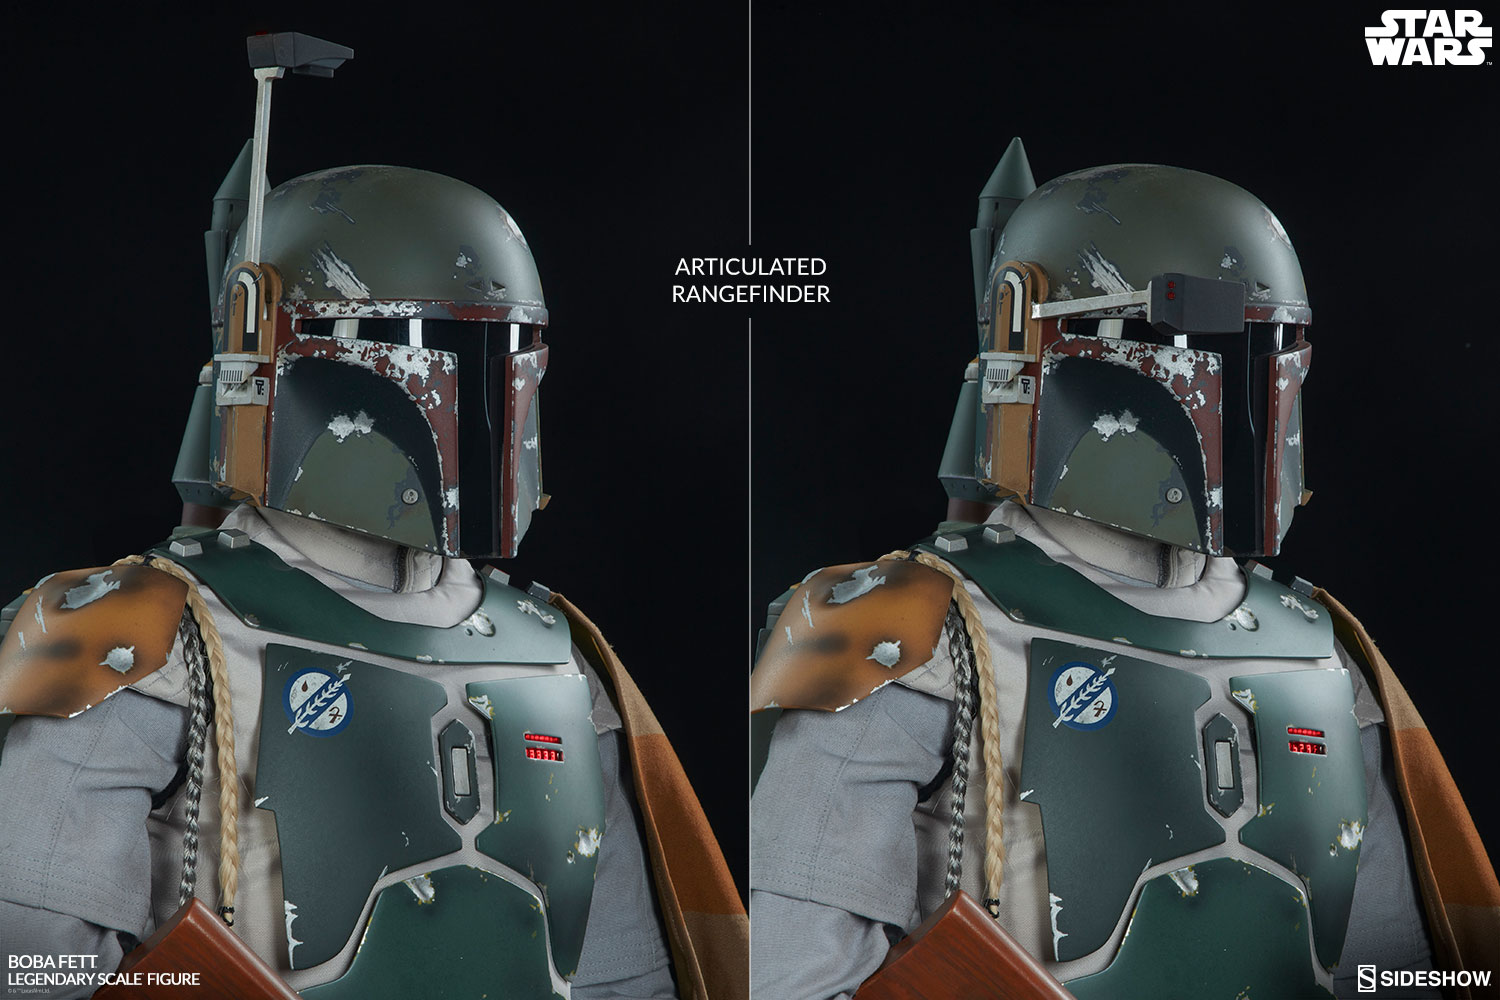 SW-Boba-fett-legendary-scale-figure-06